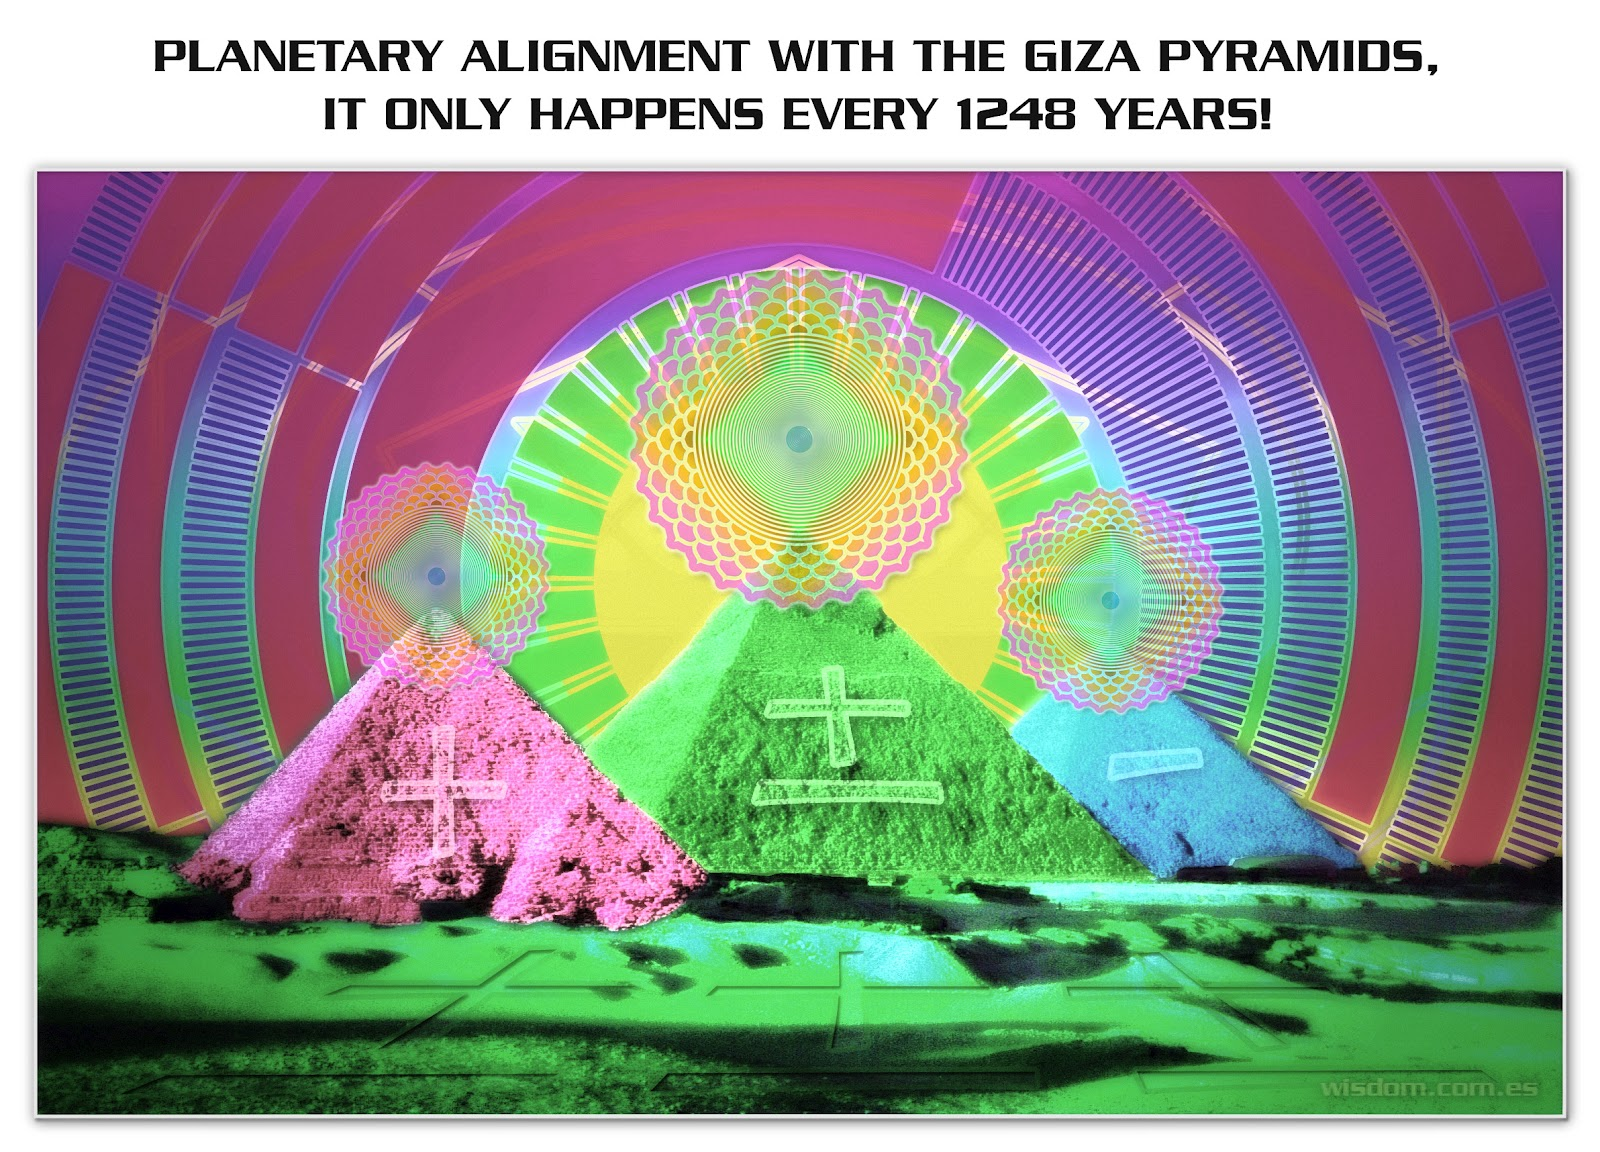 Planets Align with Giza Pyramids (page 2) - Pics about space